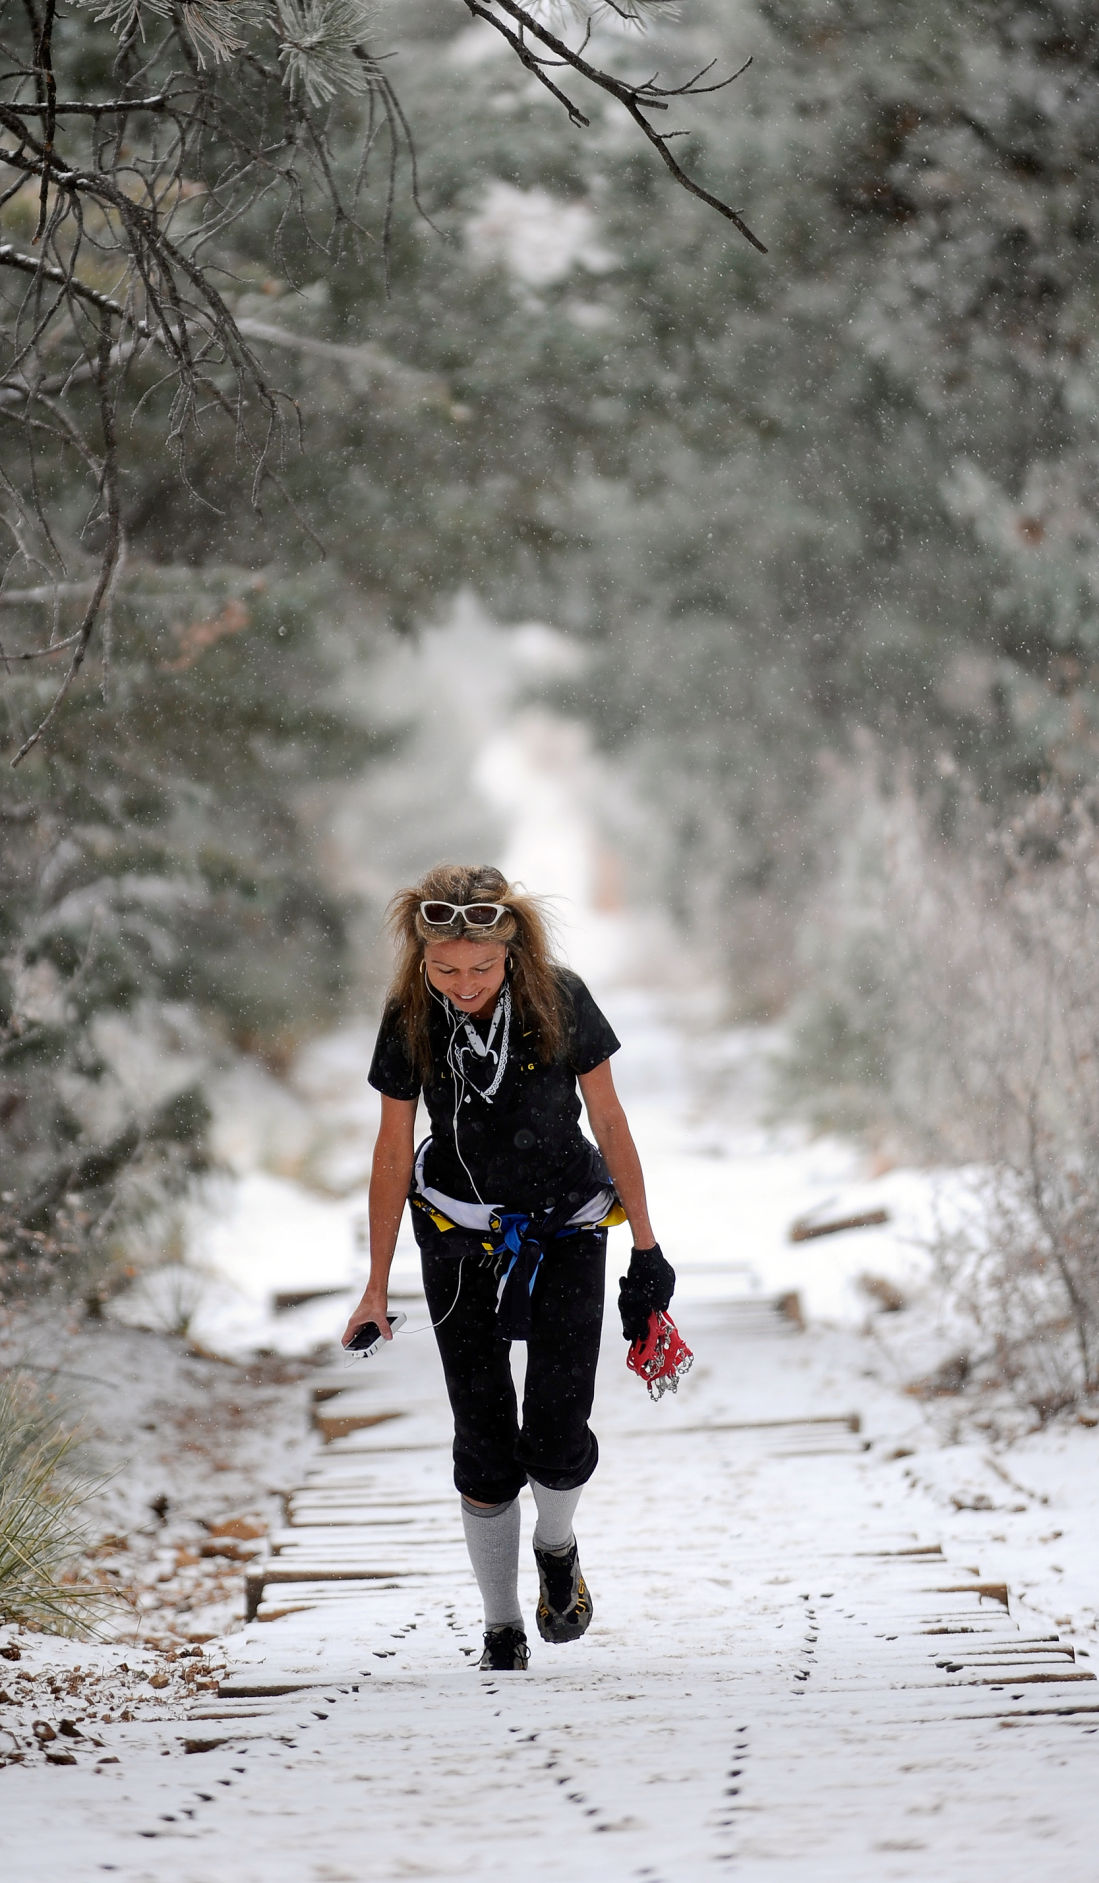 Jill Suarez hikes the Manitou Incline Friday, Feb. 25, 2011, in the snow. Suarez said she's been climbing the Incline since the railroad tracks were removed in the early 1990s and takes pictures, send texts and checks the internet while making the 2000-foot ascent. ( The Gazette, Christian Murdock)